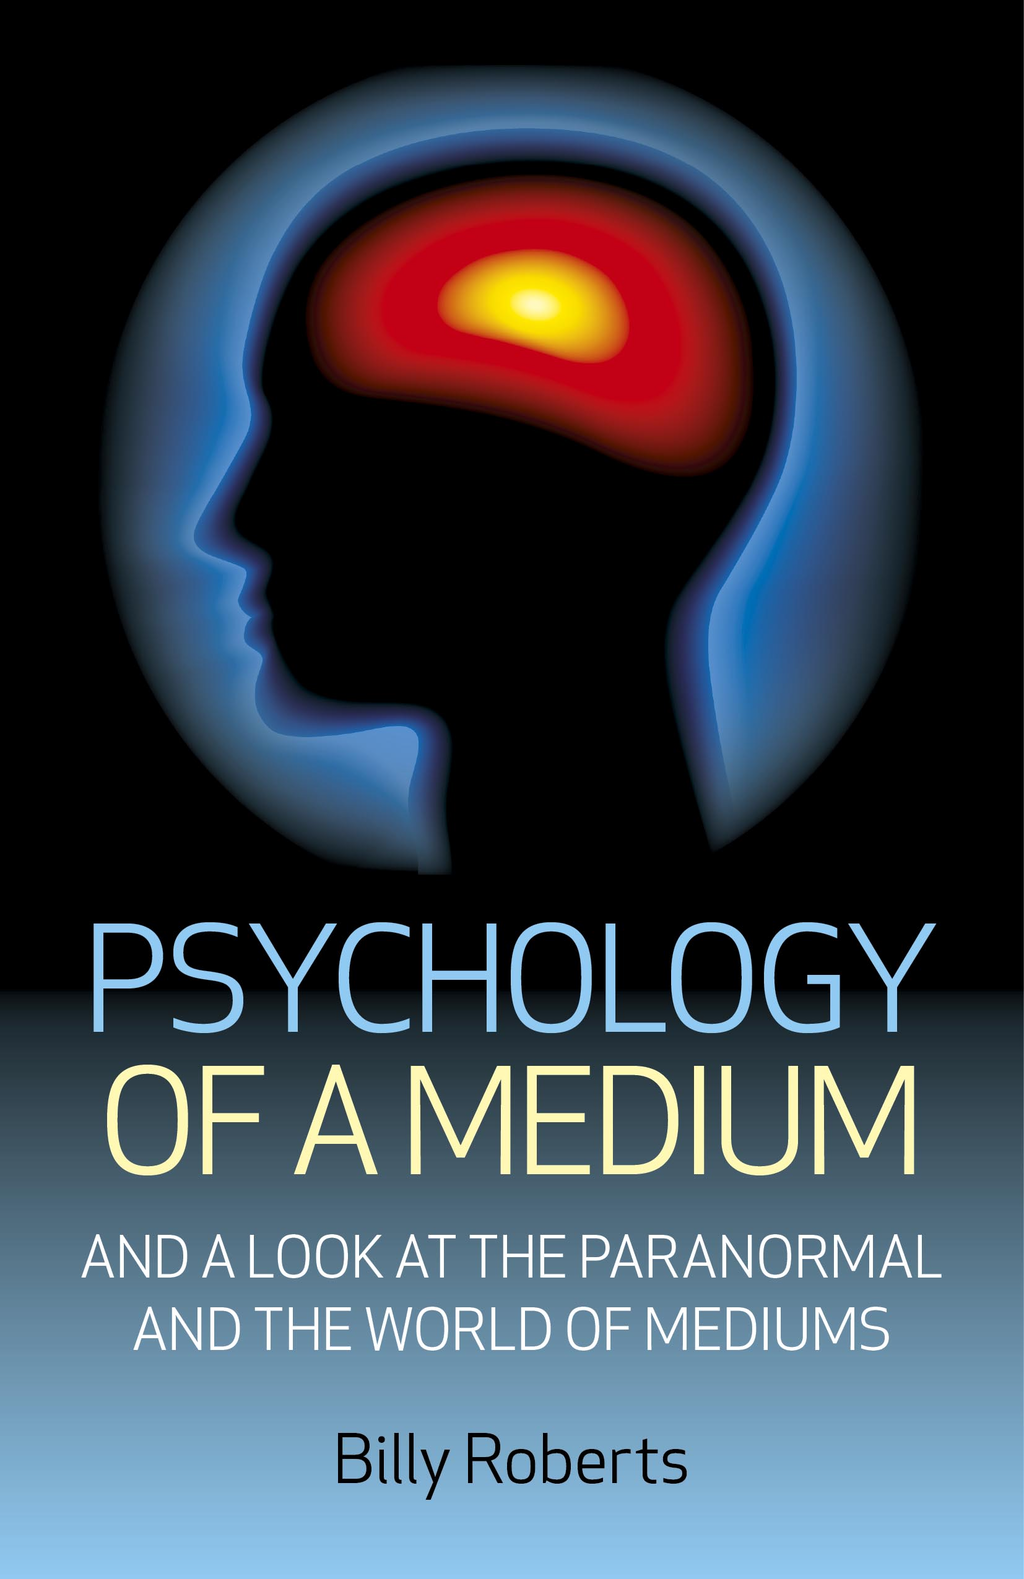 Psychology of a Medium: And A Look At The Paranormal And The World Of Mediums